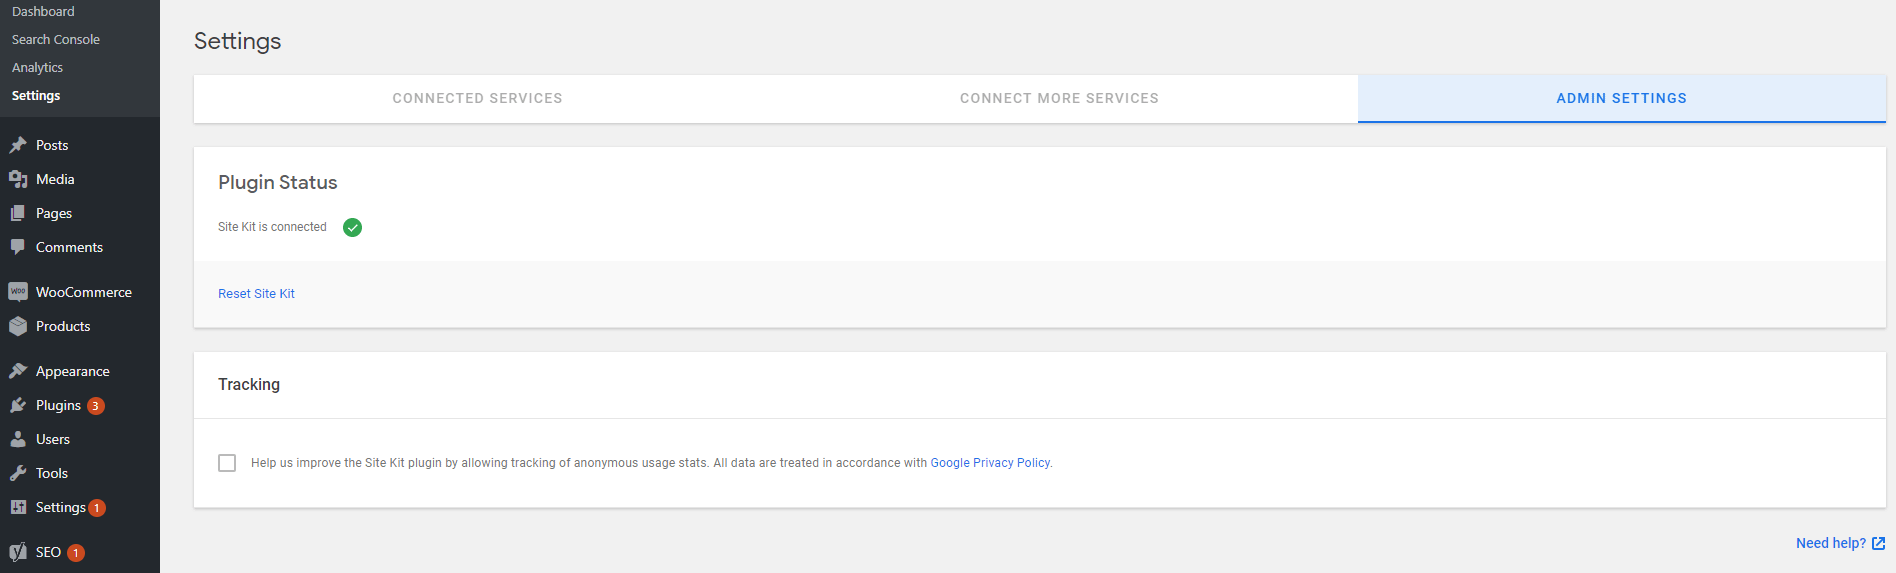 Checking Google Site Kit's settings.